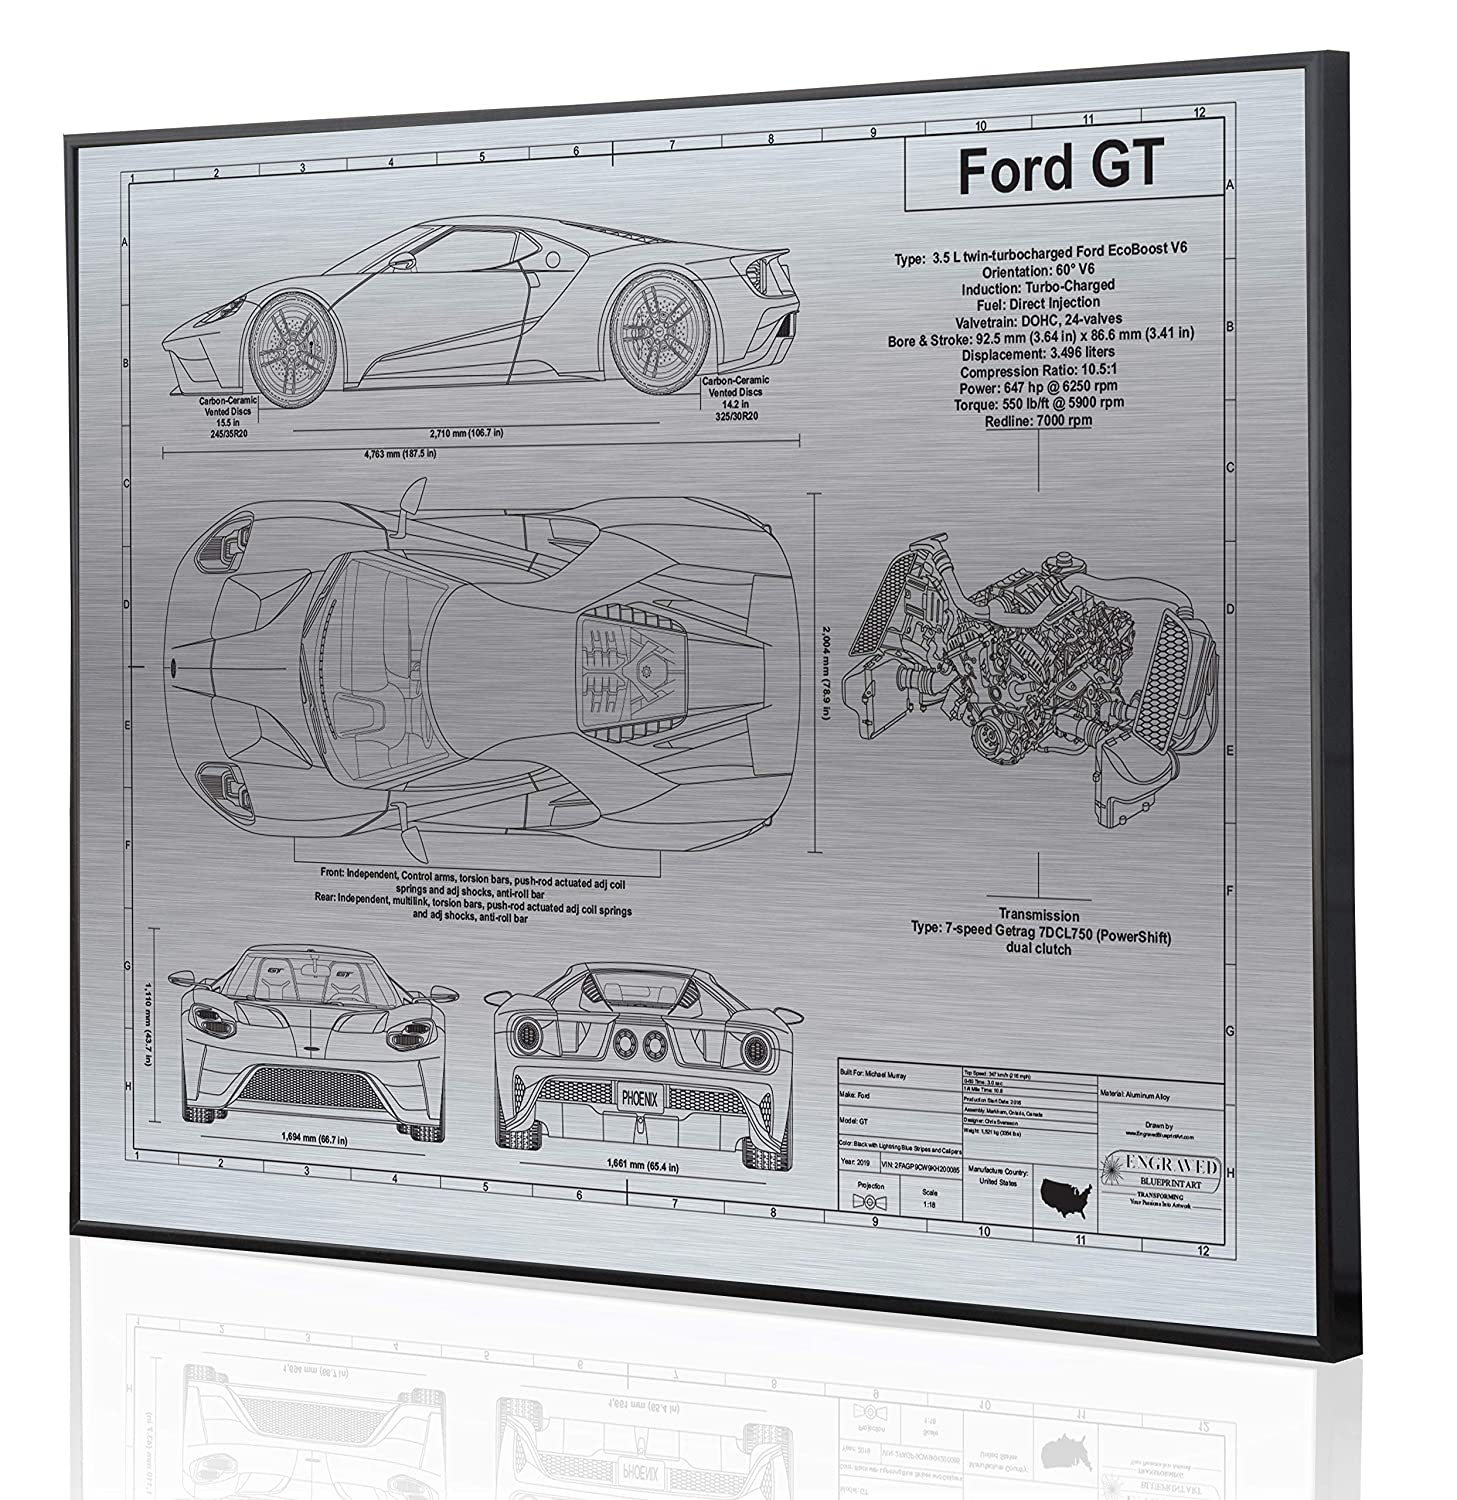 amazon com: ford gt 2017-19 blueprint artwork-laser marked &  personalized-the perfect ford gifts: handmade